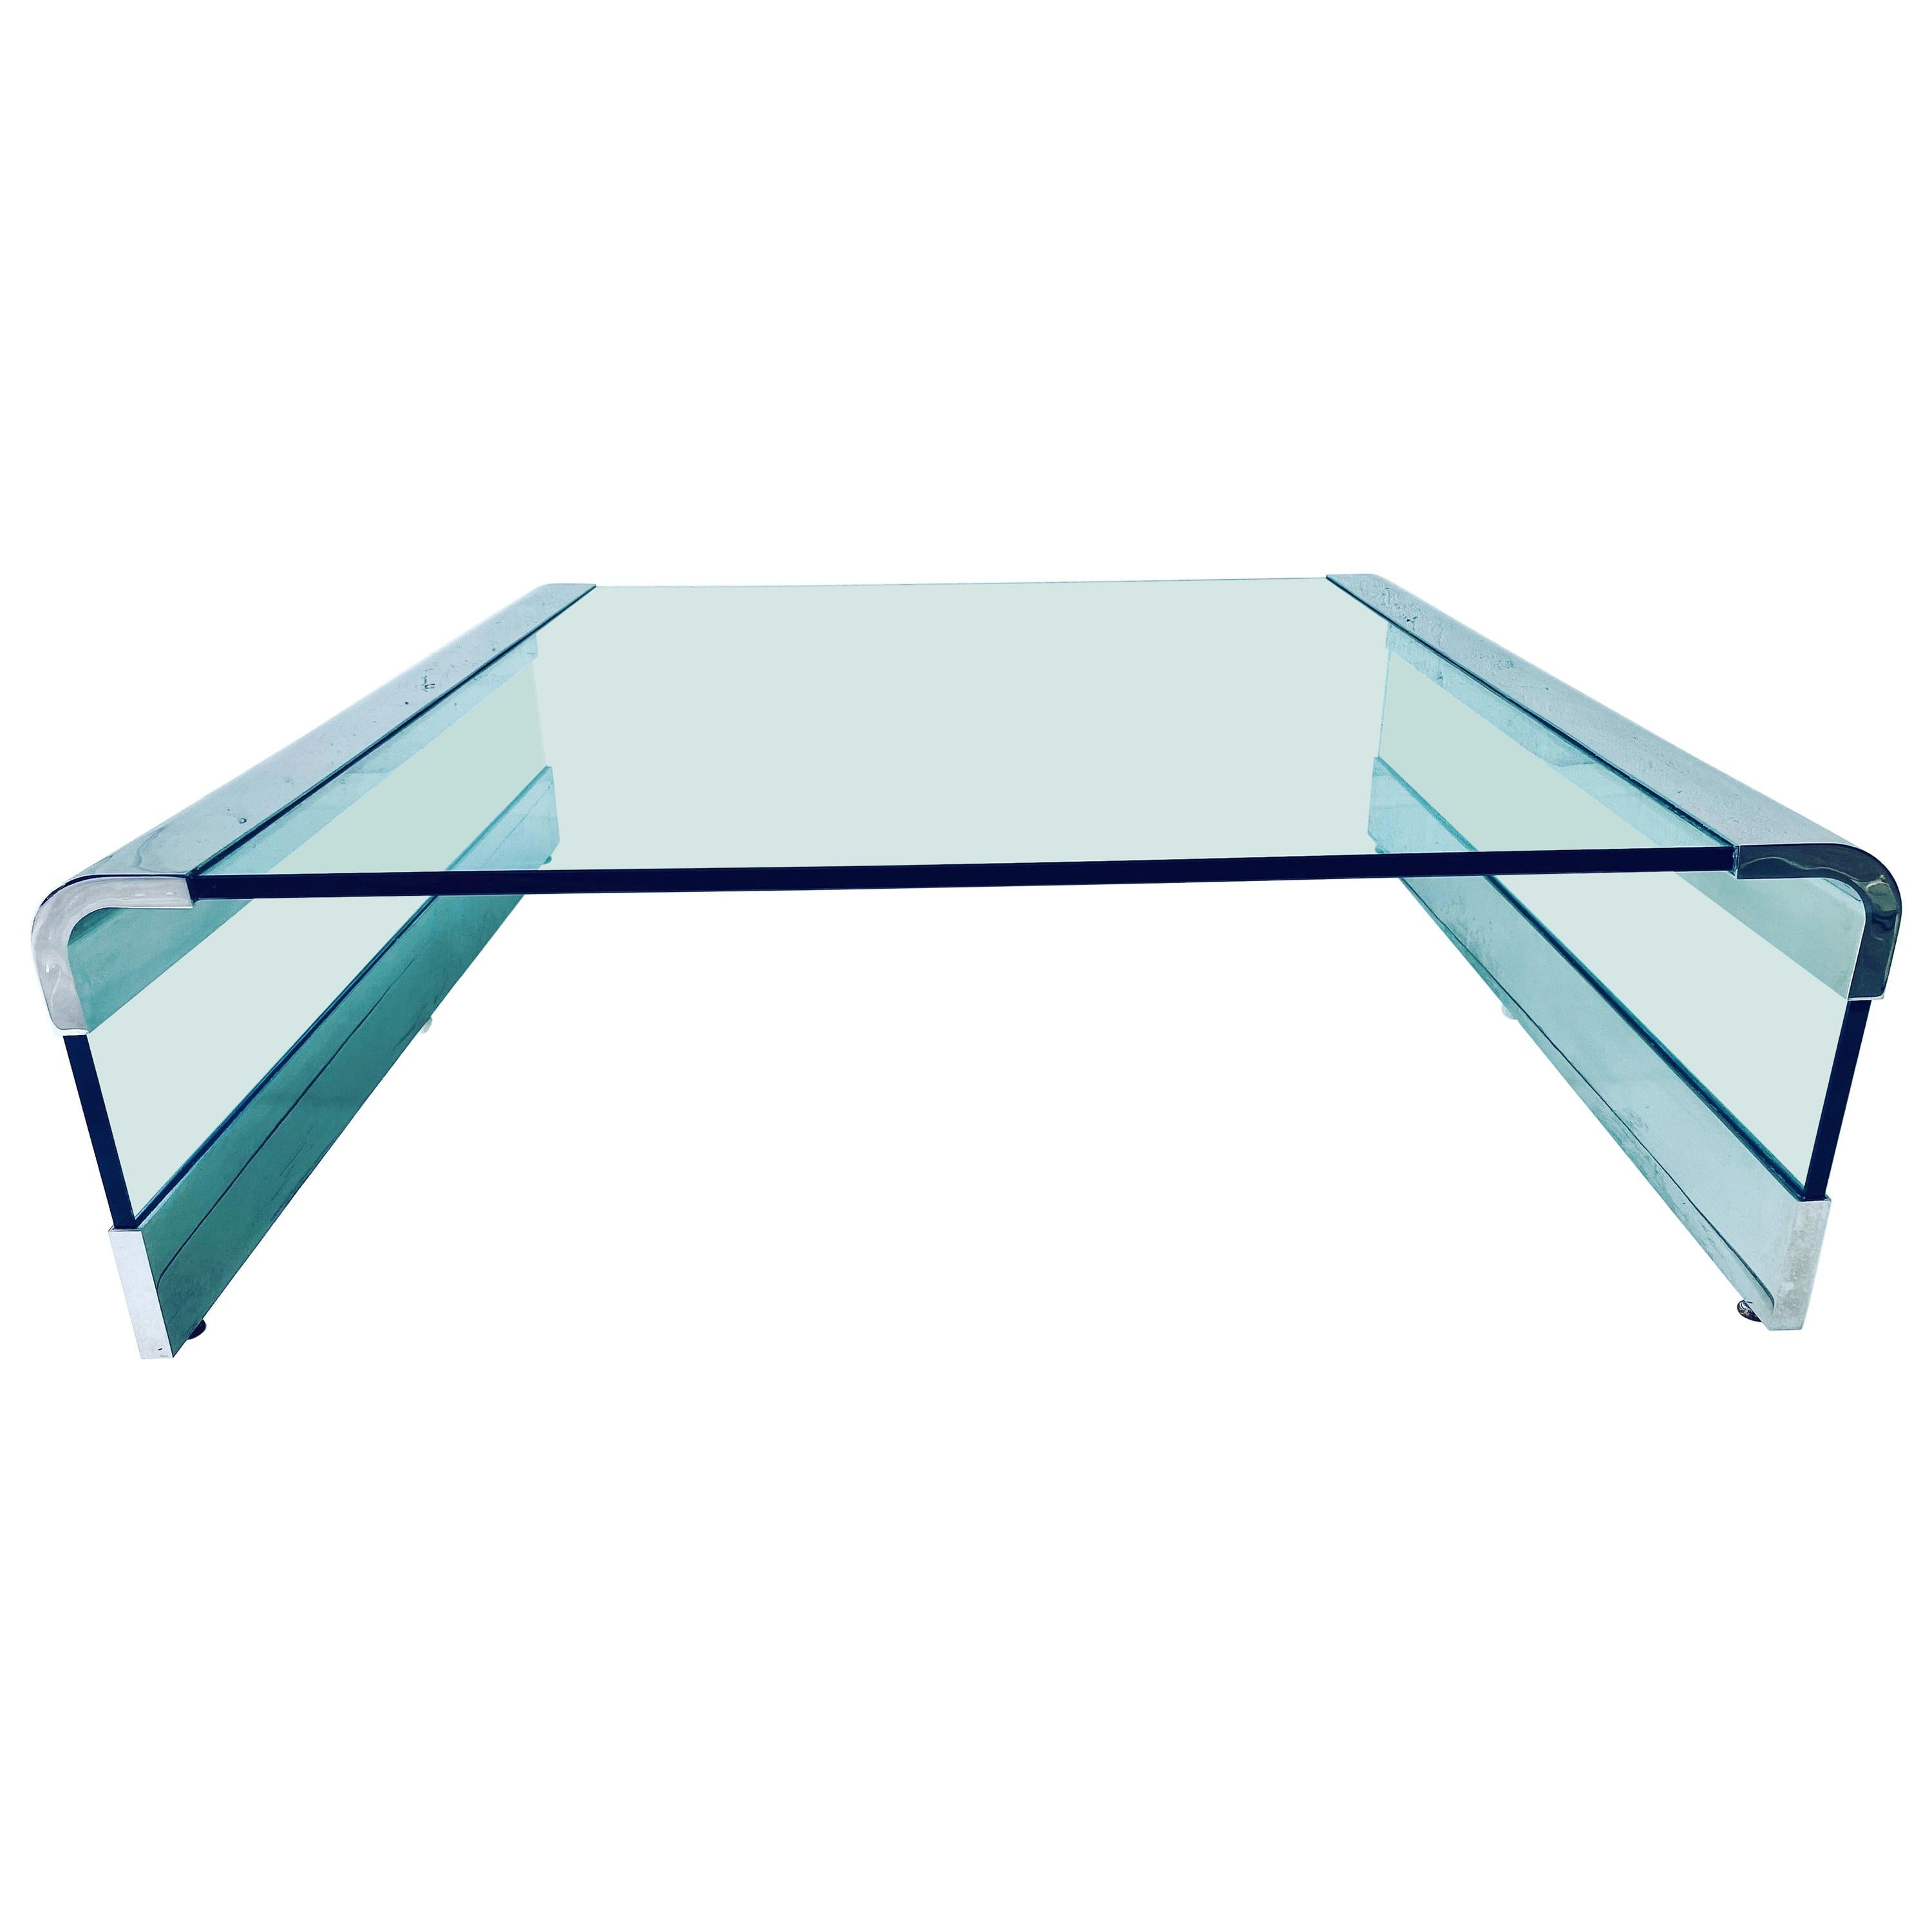 Leon Rosen Polished Chrome and Glass Waterfall Coffee Table for Pace Collection